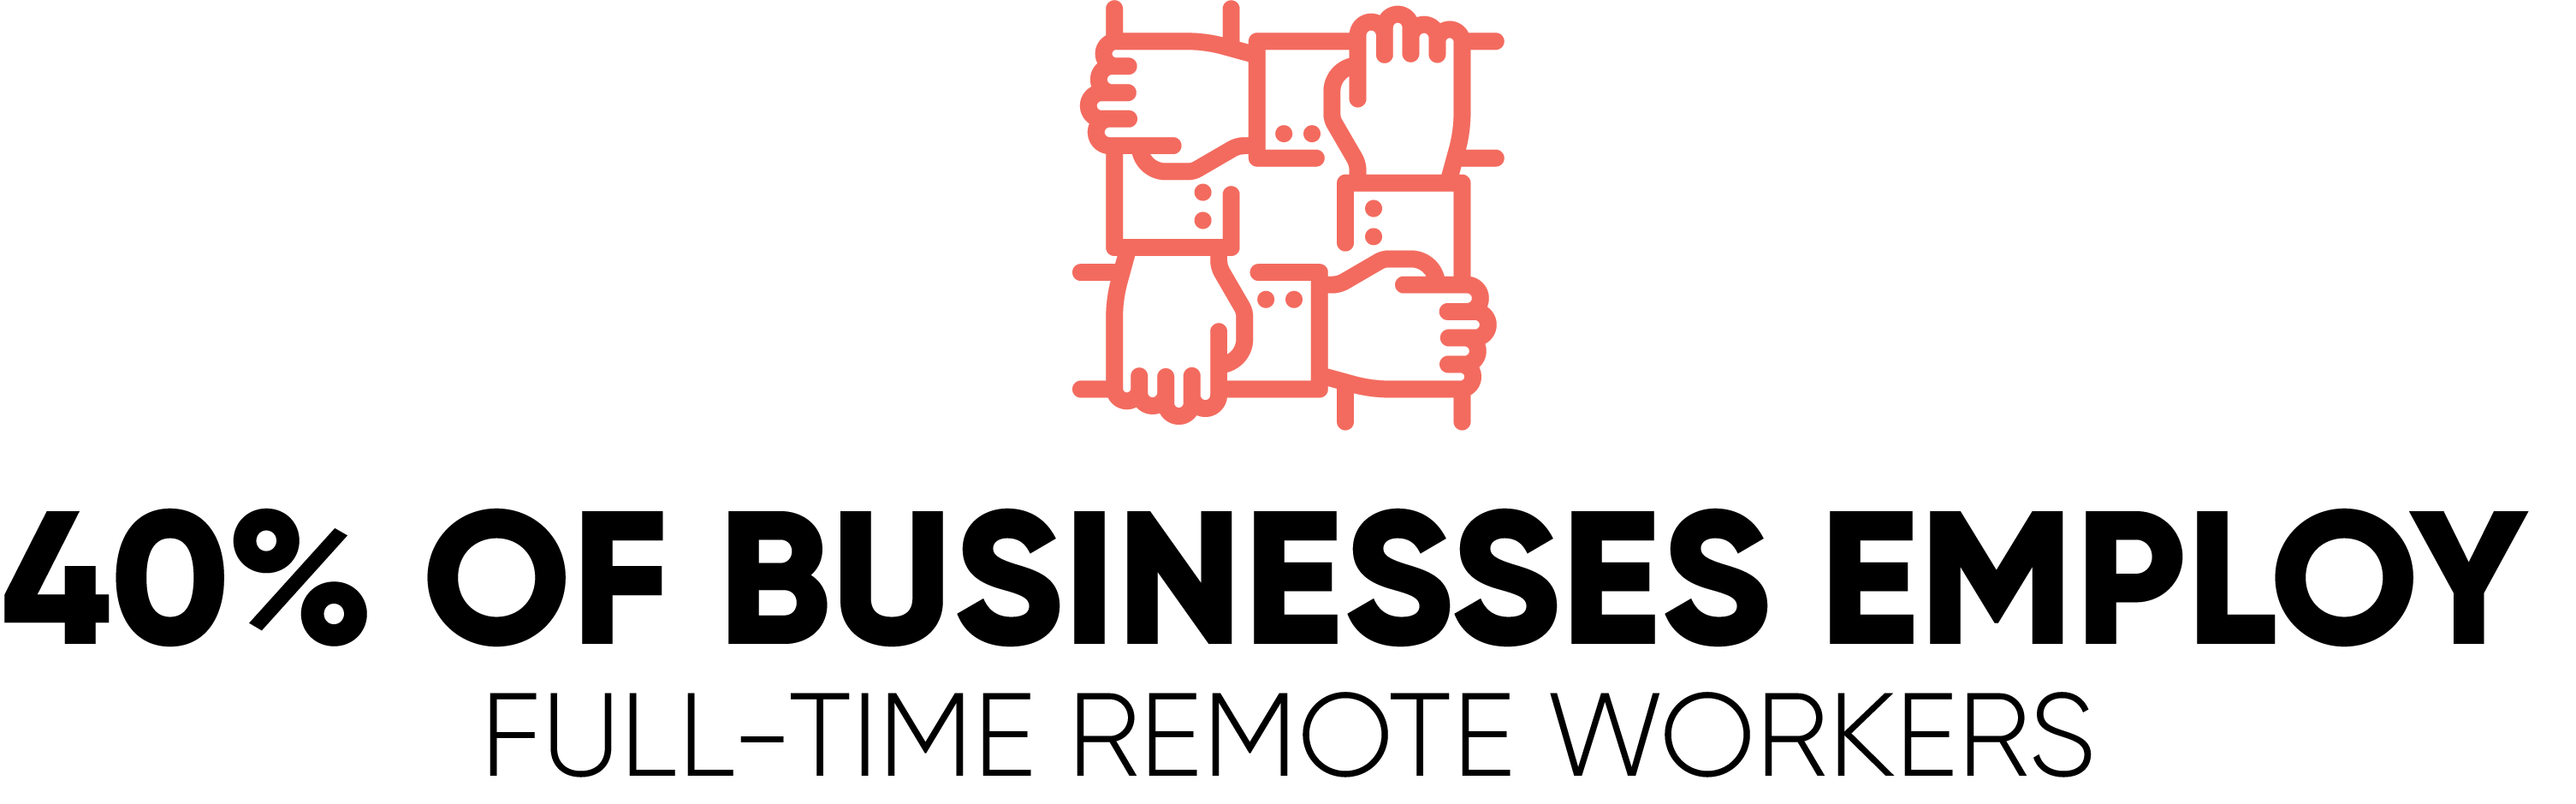 40% of Businesses Employ Full-Time Remote Workers